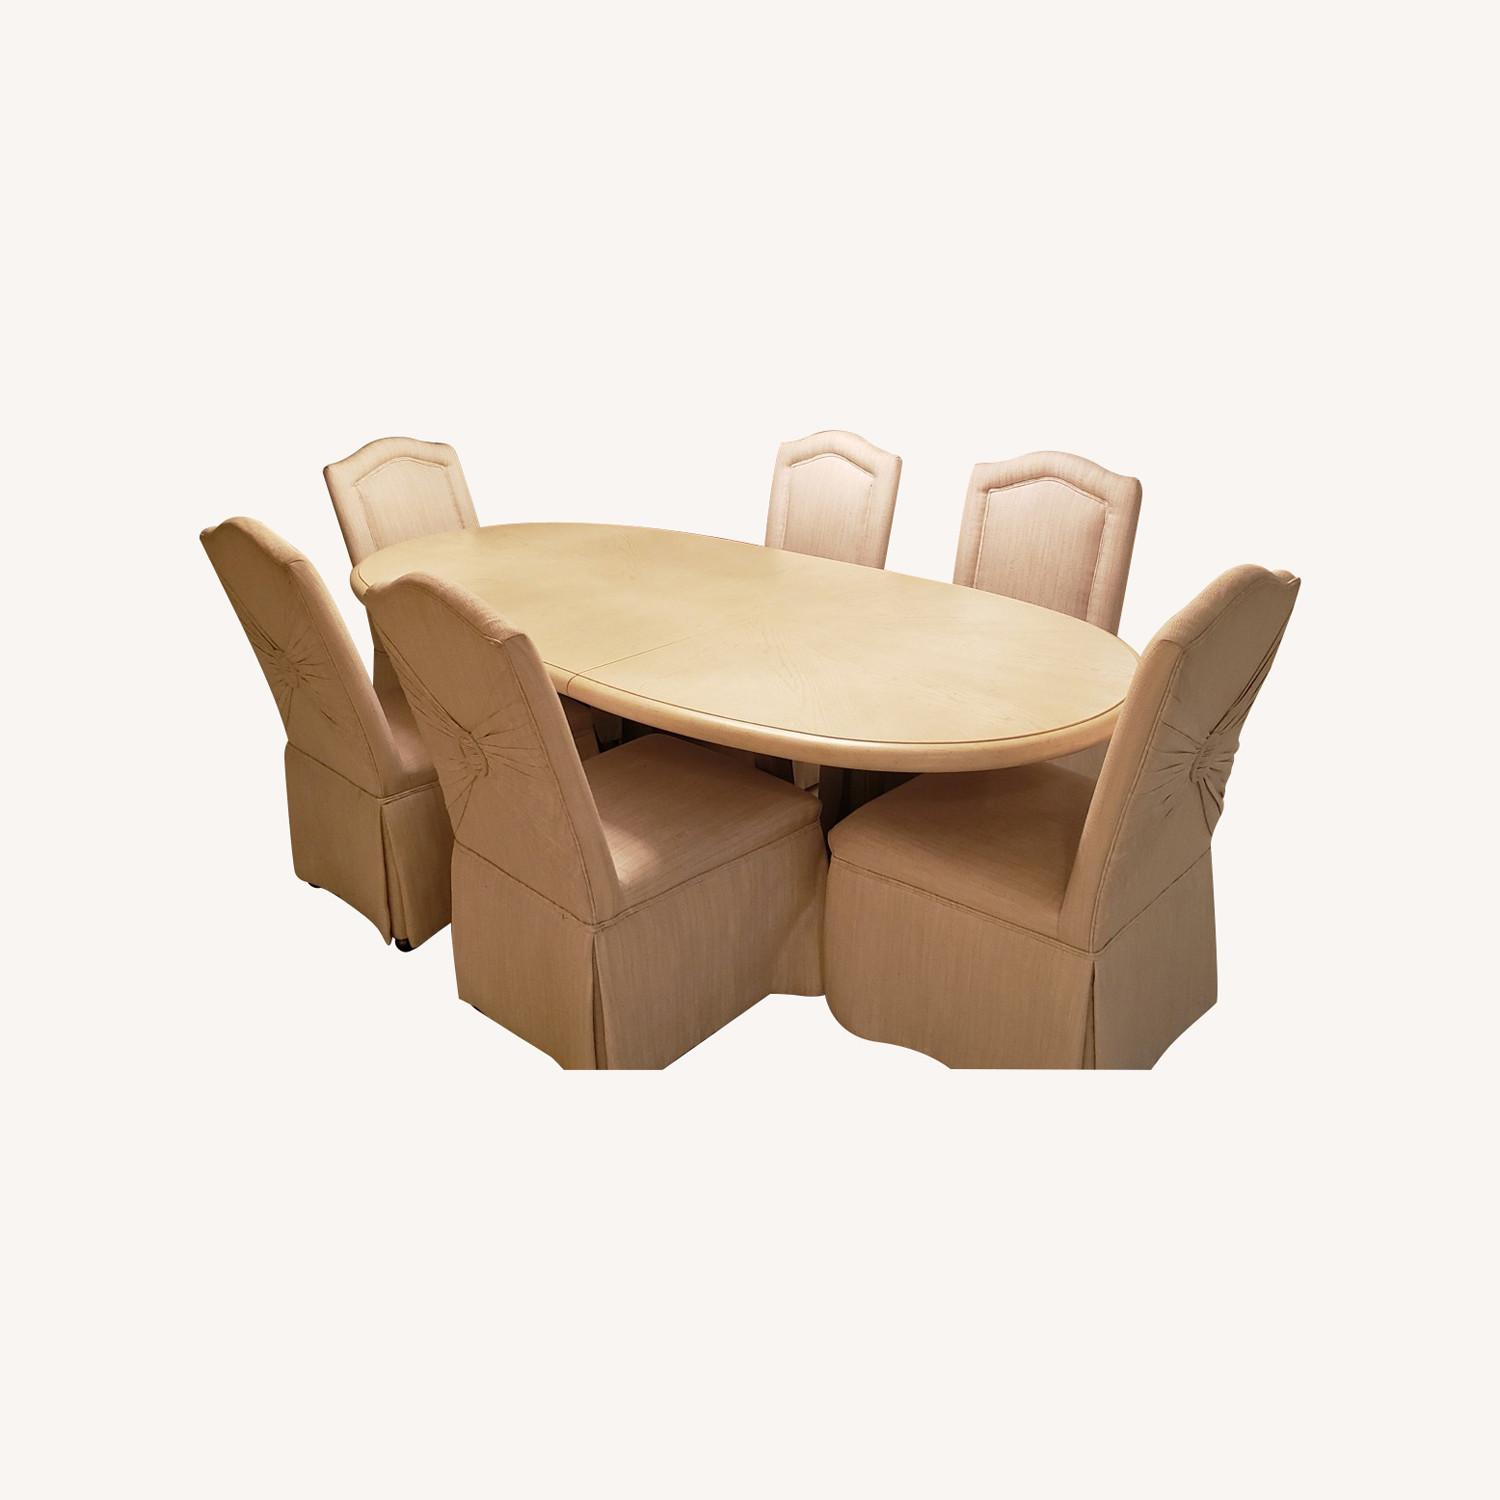 Drexel Heritage Table Set (6 chairs) - image-0